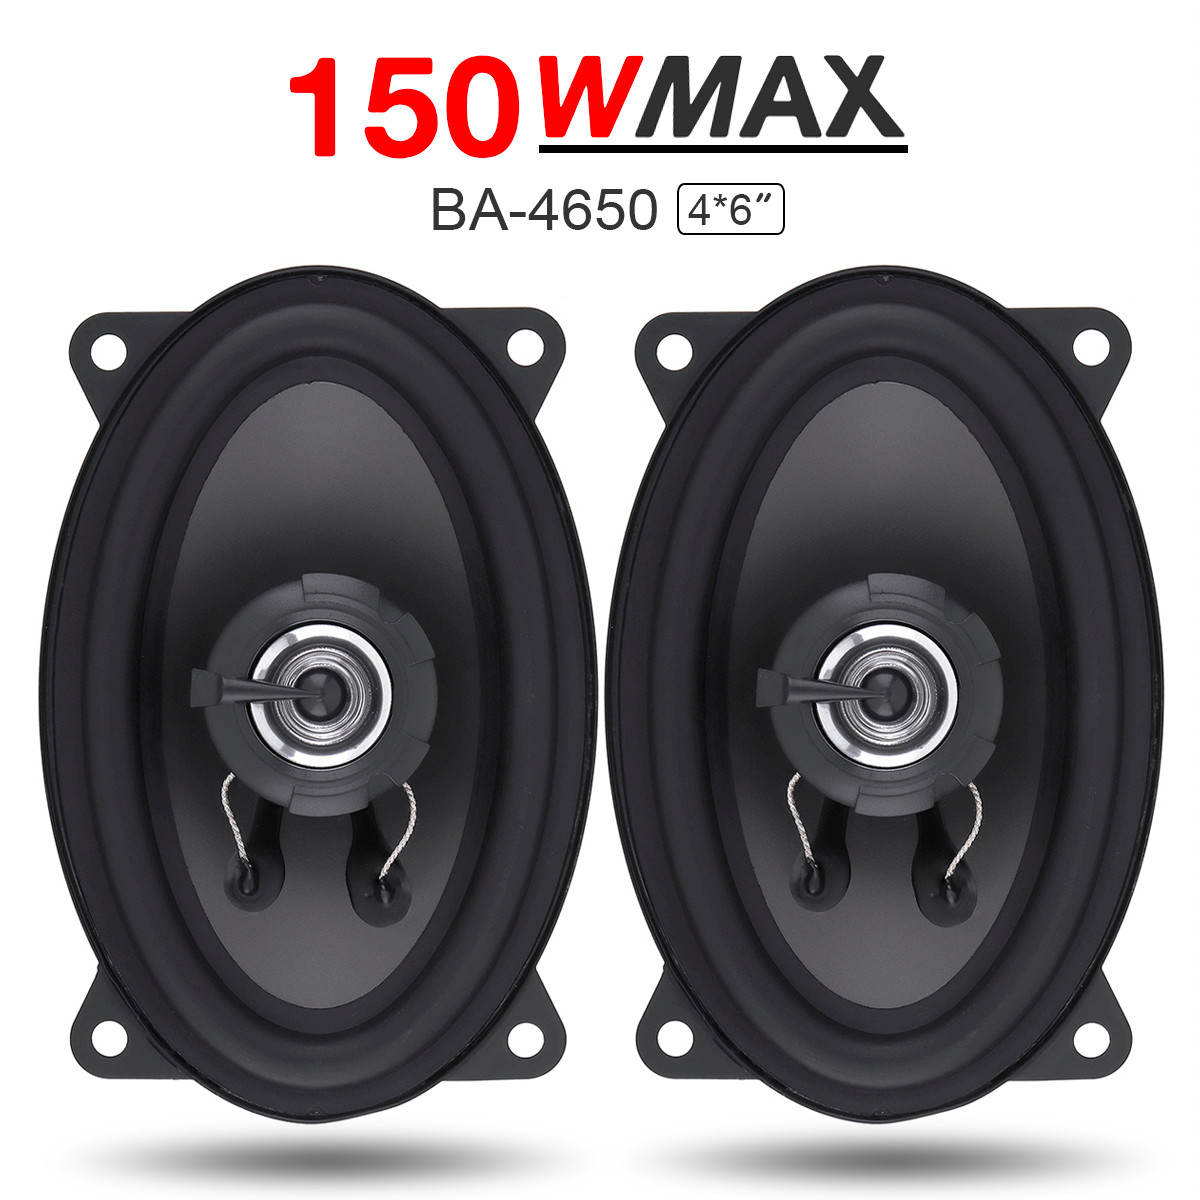 2pcs 4*6 Inch 2 Way 150W Car Coaxial Speaker Automobile Auto HiFi Audio Full Range Frequency Loud Speaker High Pitch Loudspeaker ghxamp 6 5 inch full range speaker coaxial horn car speaker unit 8ohm 30w neodymium car audio loudspeaker 2pcs